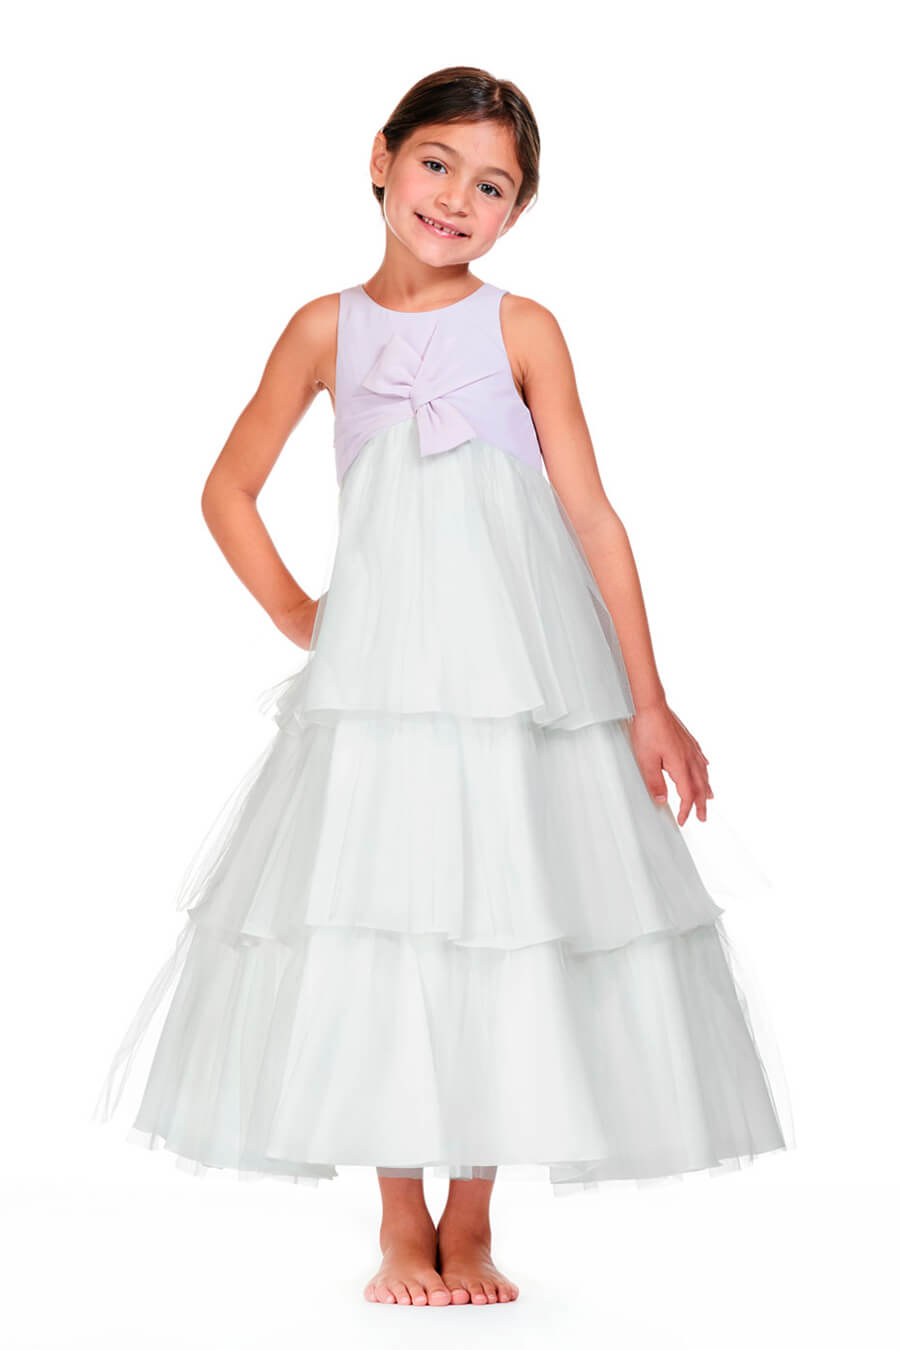 Flower girls bridesmaid dresses evening gowns flower girl flower girls bridesmaid dresses evening gowns flower girl dresses bari jay mightylinksfo